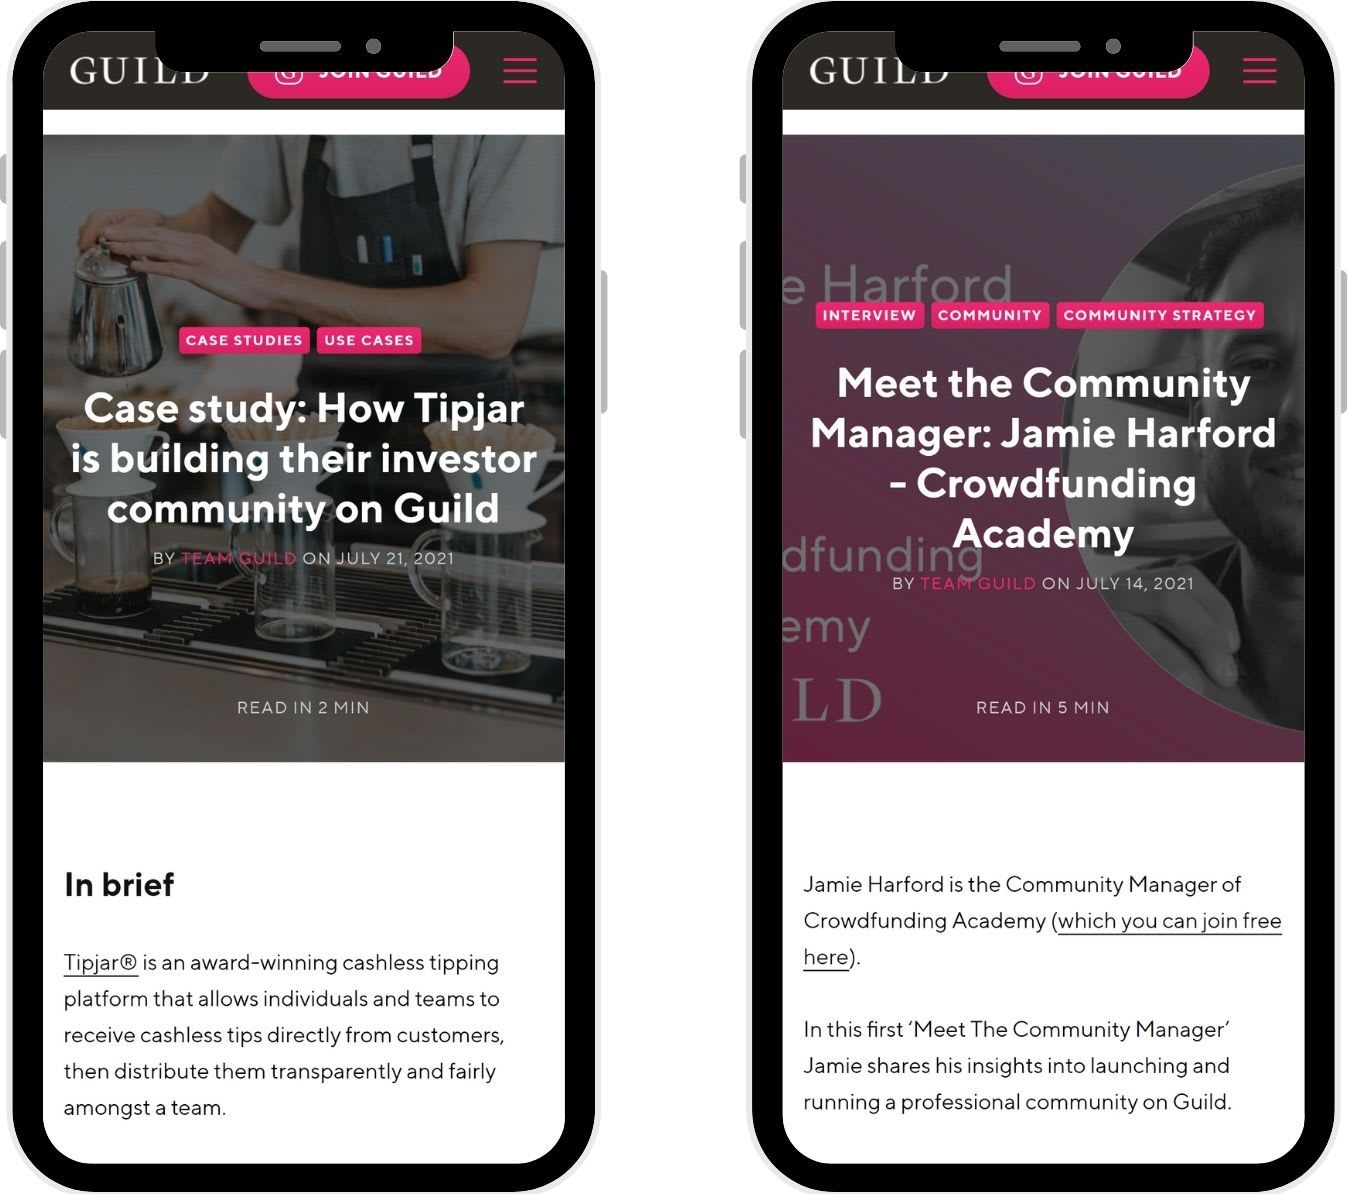 Take part in case studies, Q&As and other content to promote your community